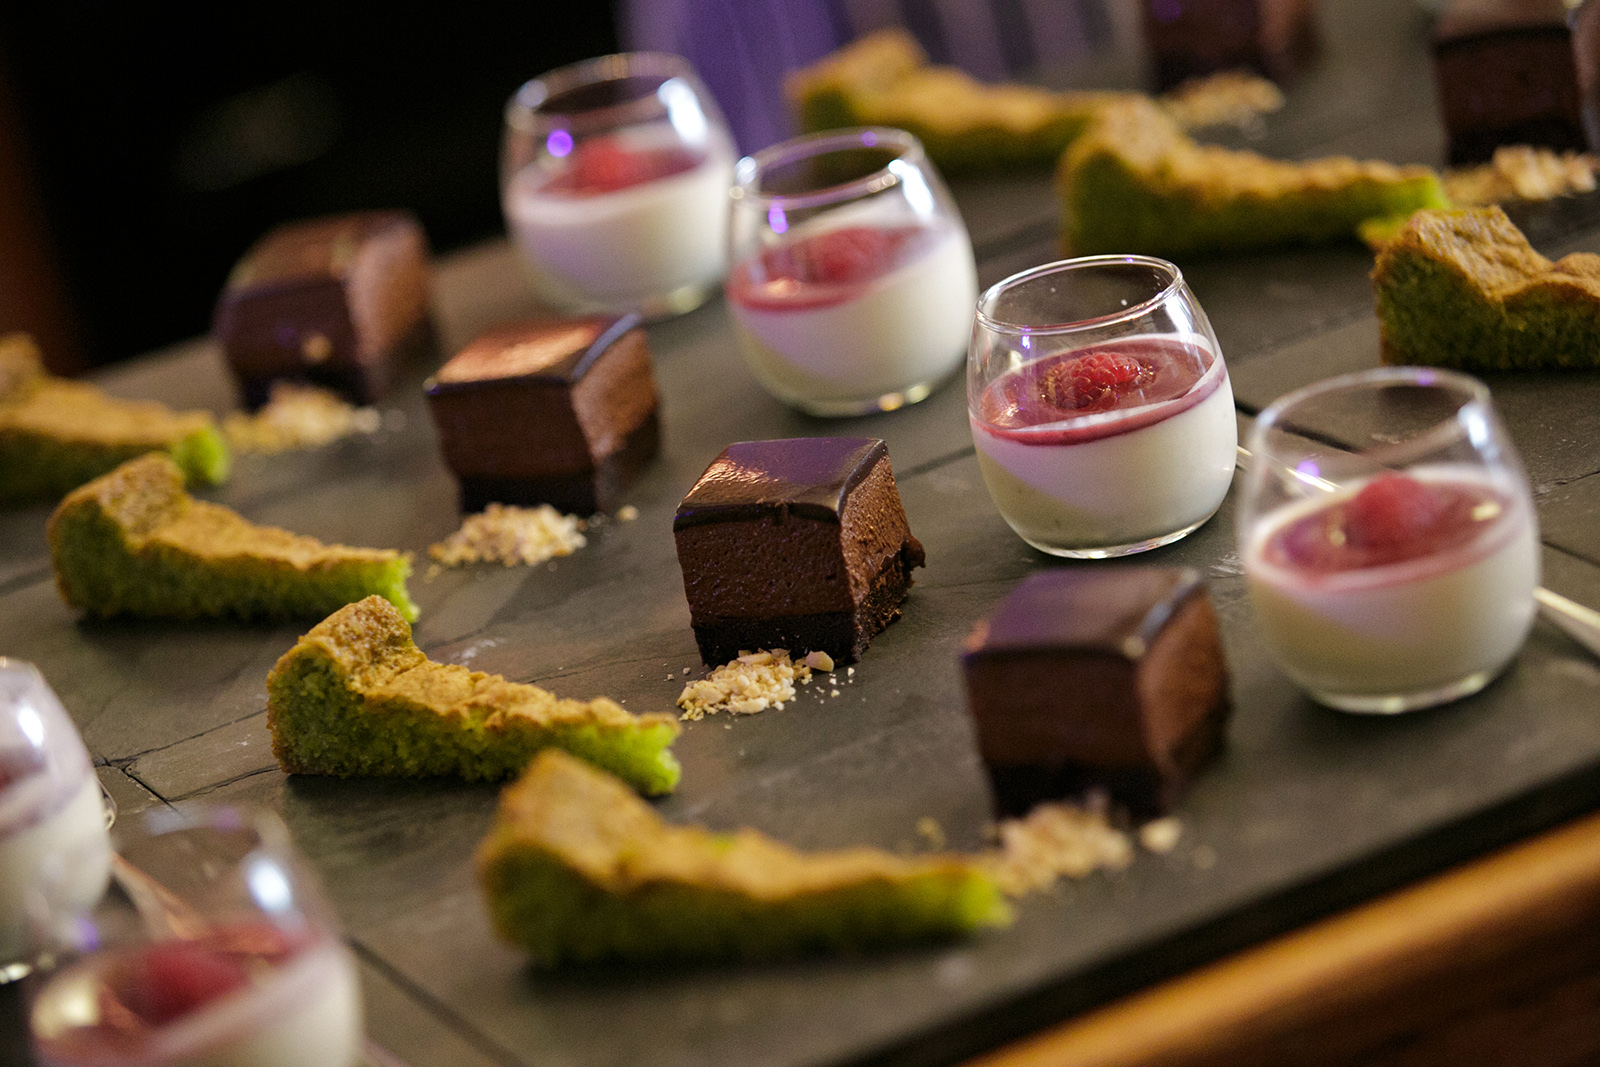 Fine dining Desserts at the somerset retreat